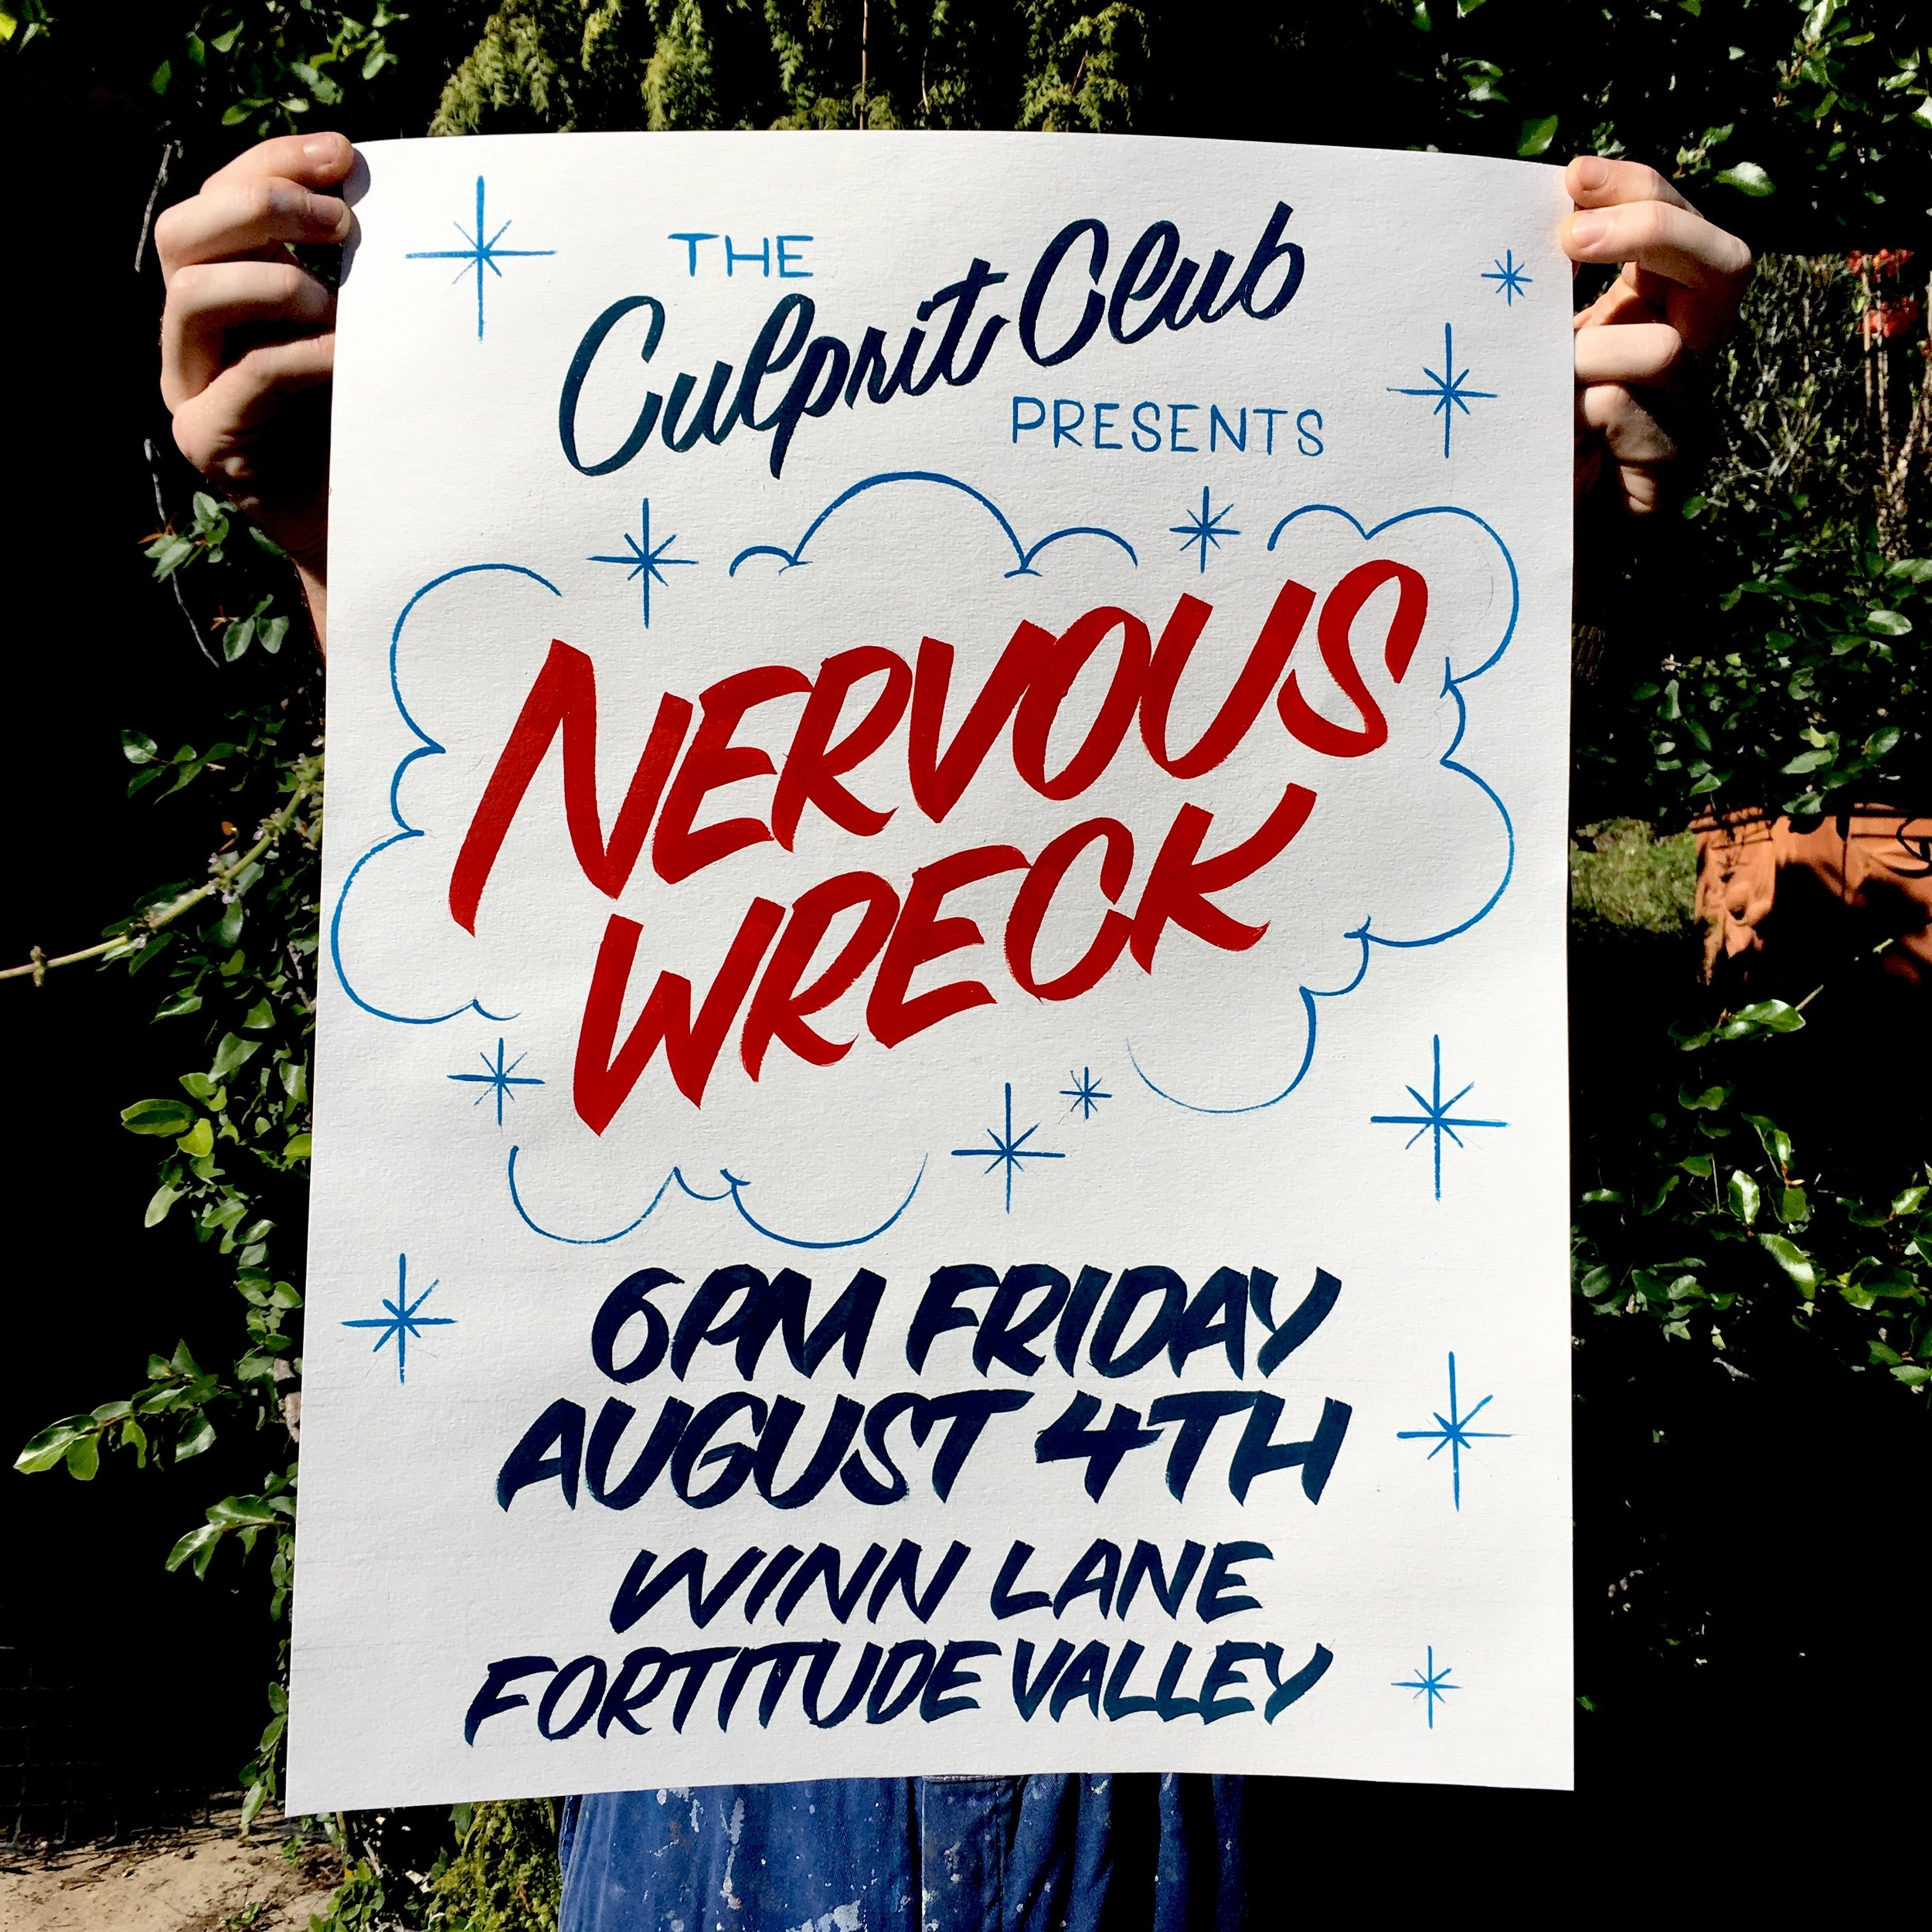 the culprit club nervous wreck joe o'toole brisbane fortitude valley hand type sign writing